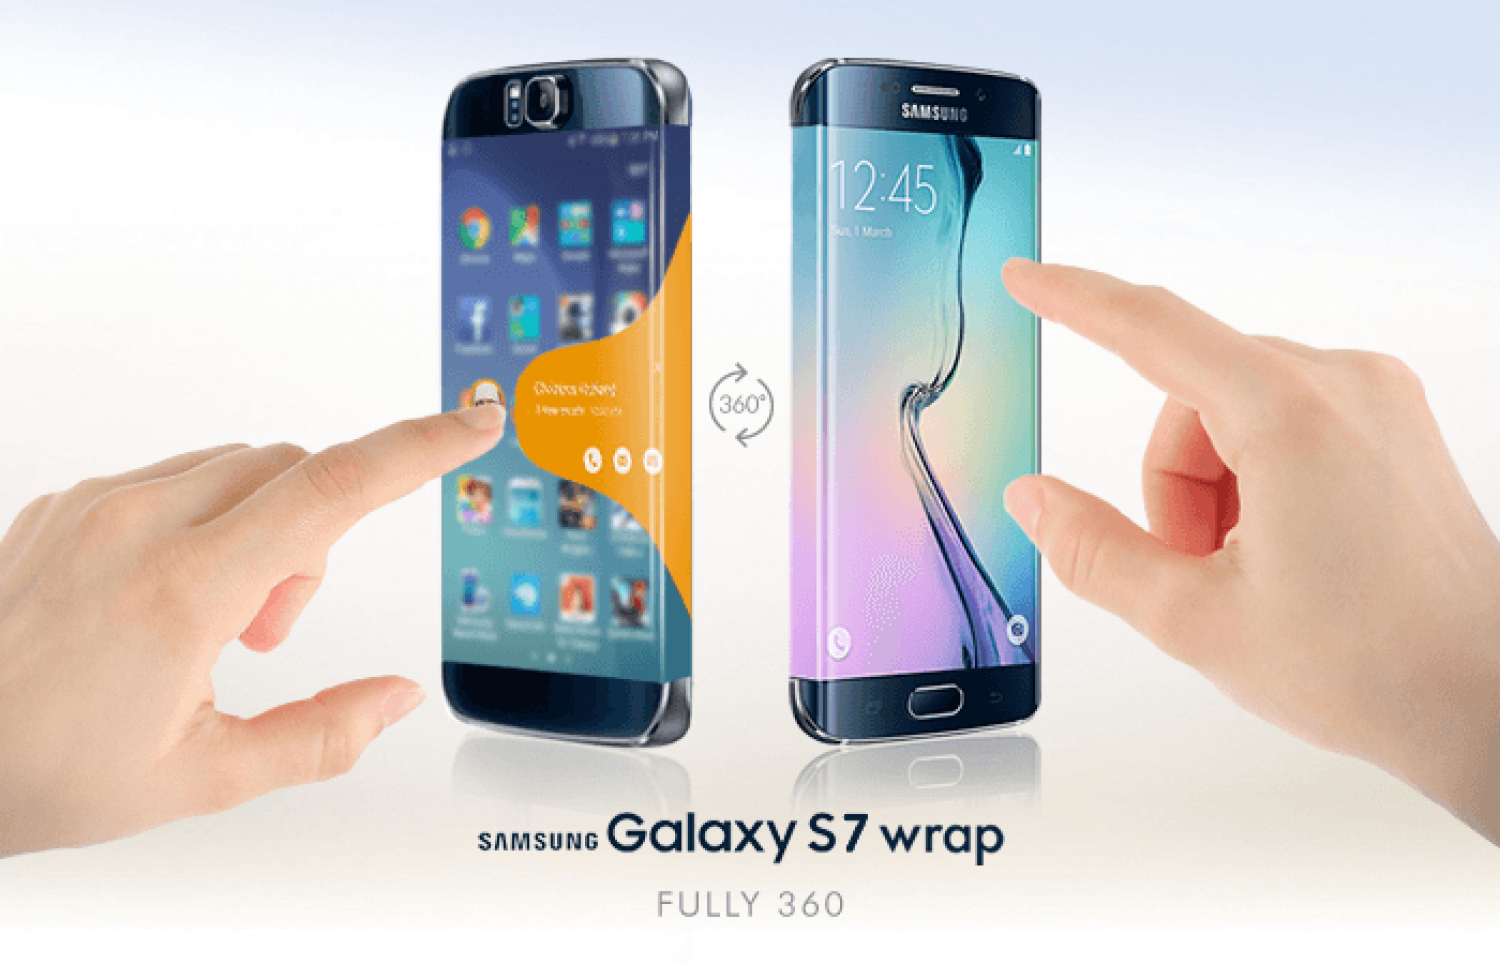 Samsung Galaxy S7 Wrap - The First 360 Degree Screen Device Infographic